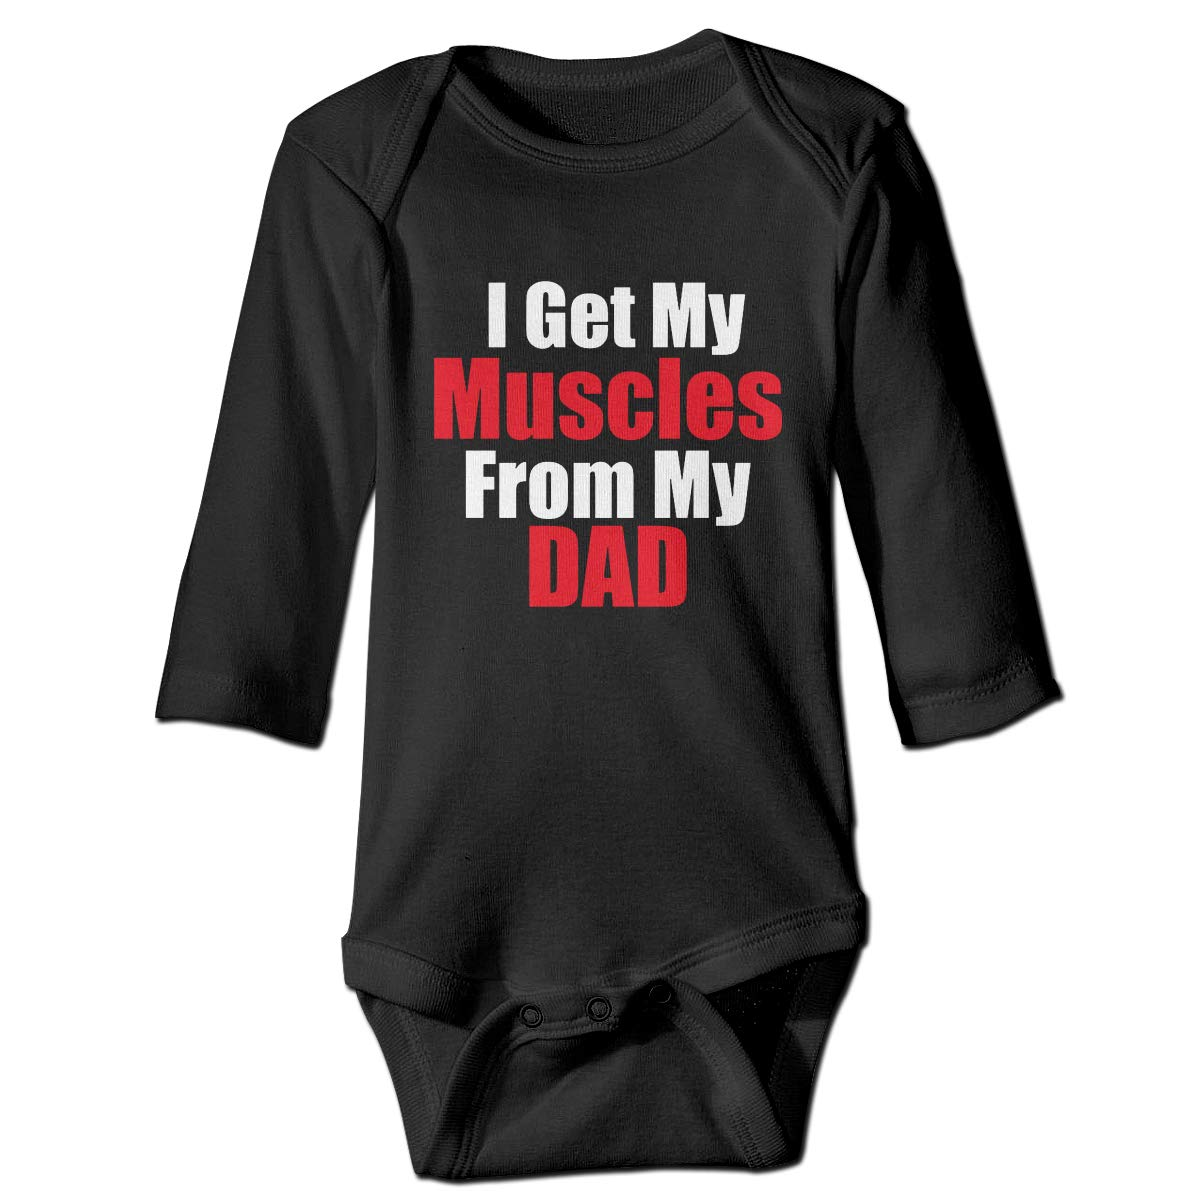 Cnfoldjfong I Get My Muscles from Daddy Long Sleeve Onesies Outfits